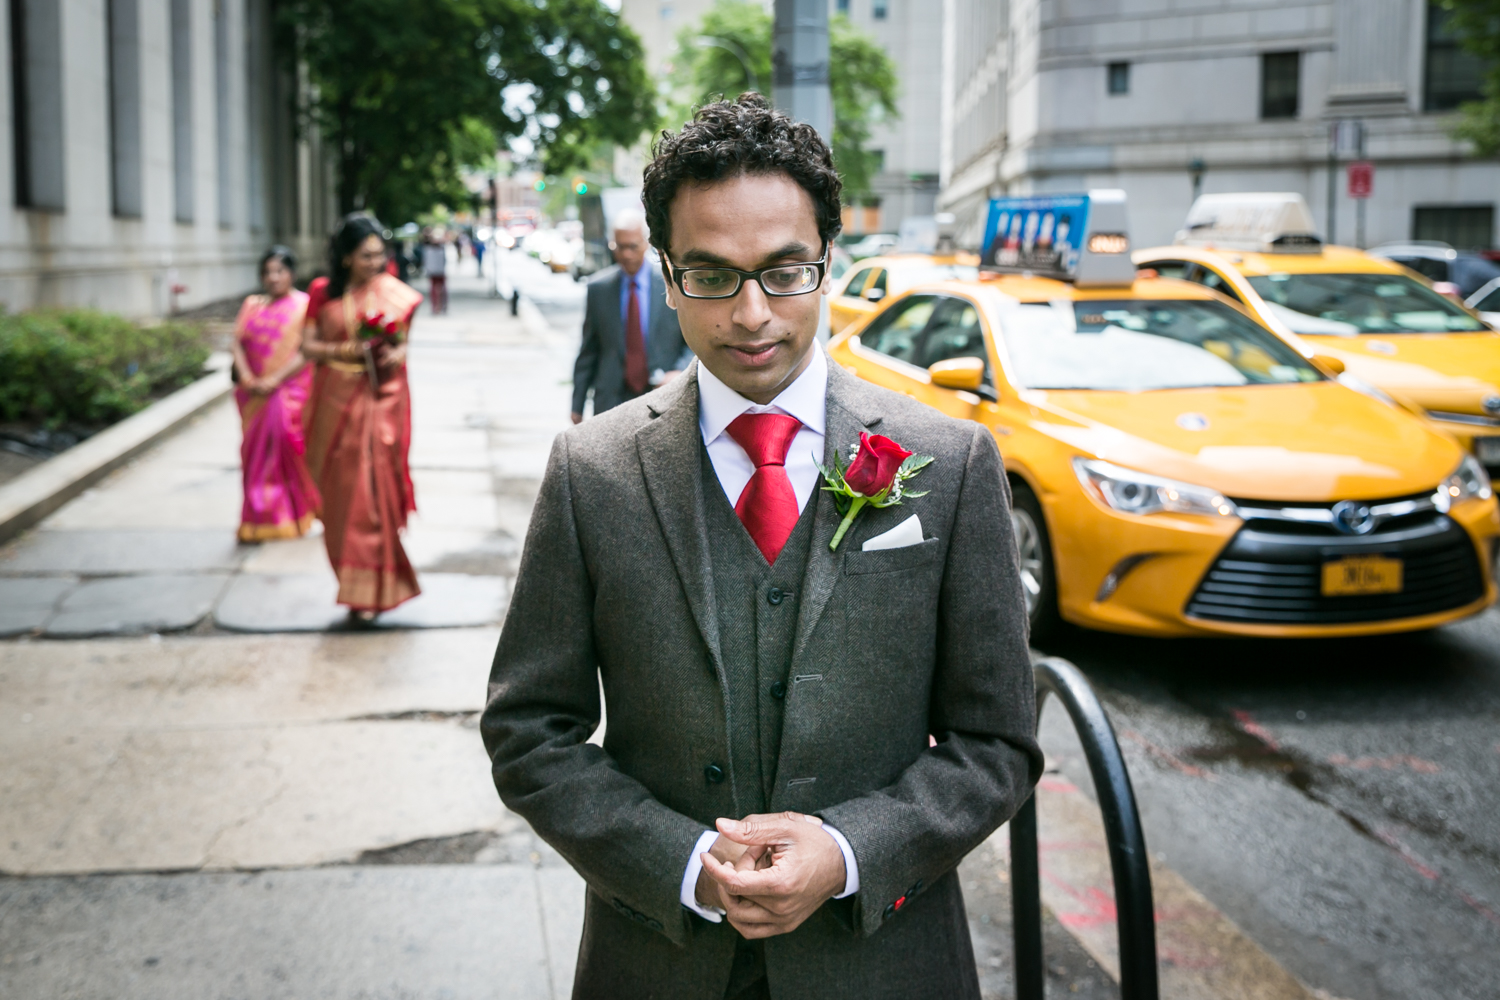 Groom waiting for bride on sidewalk during first look